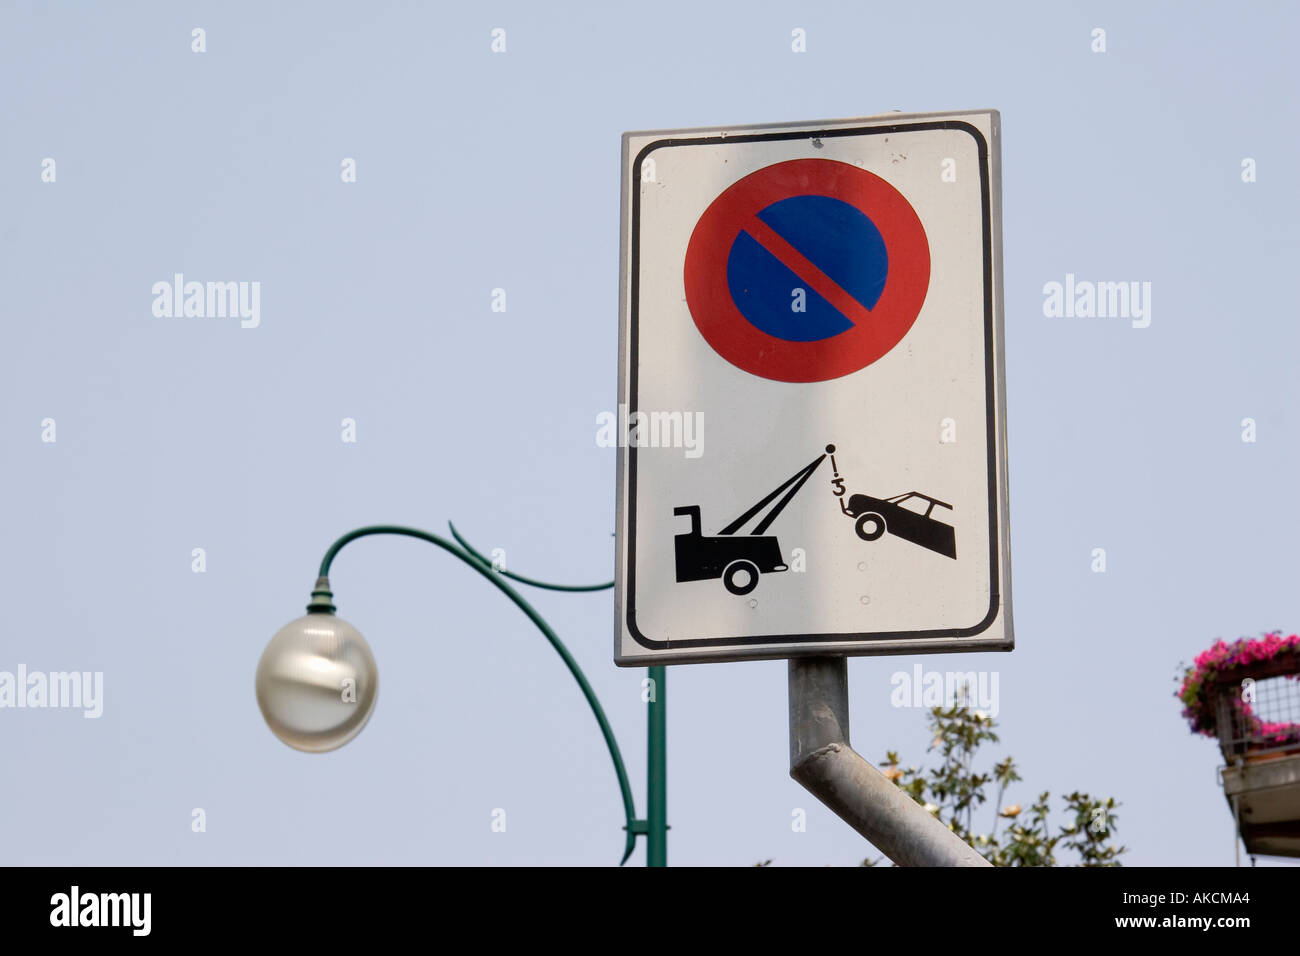 No parking towaway zone sign on the island of Lido Venice Italy - Stock Image